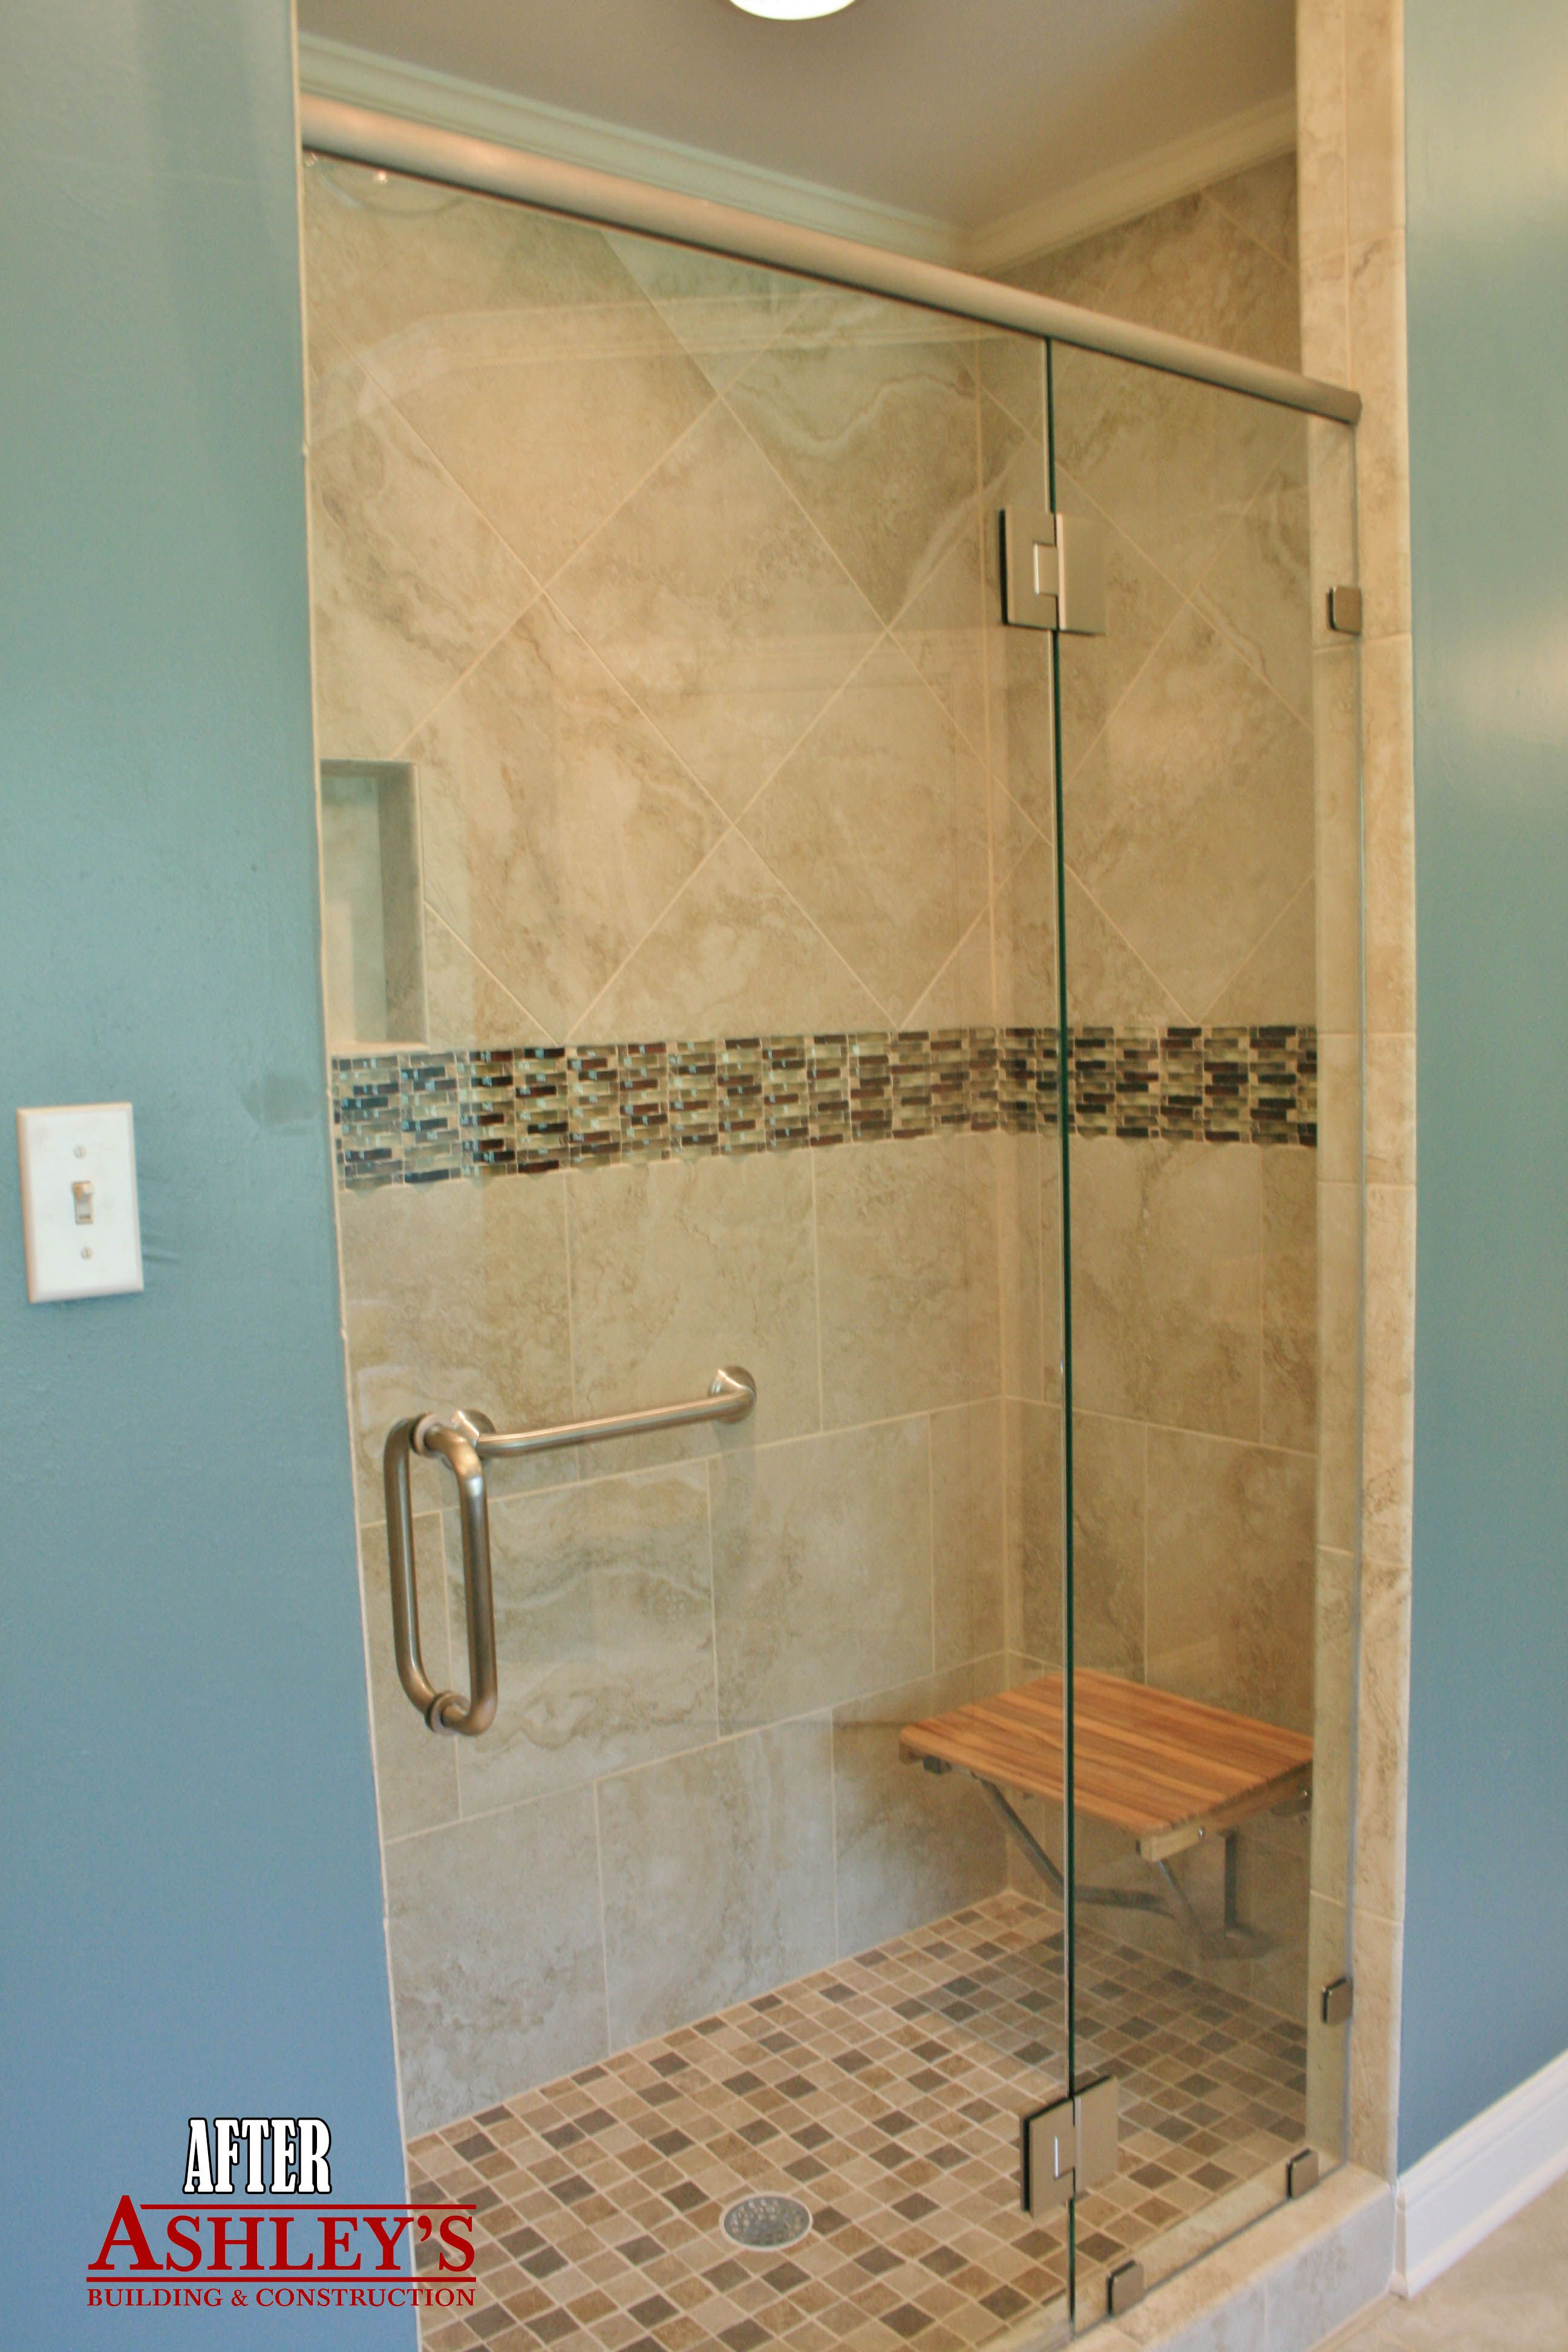 Travertino Royal Ivory tile and deco tile jazz up this once